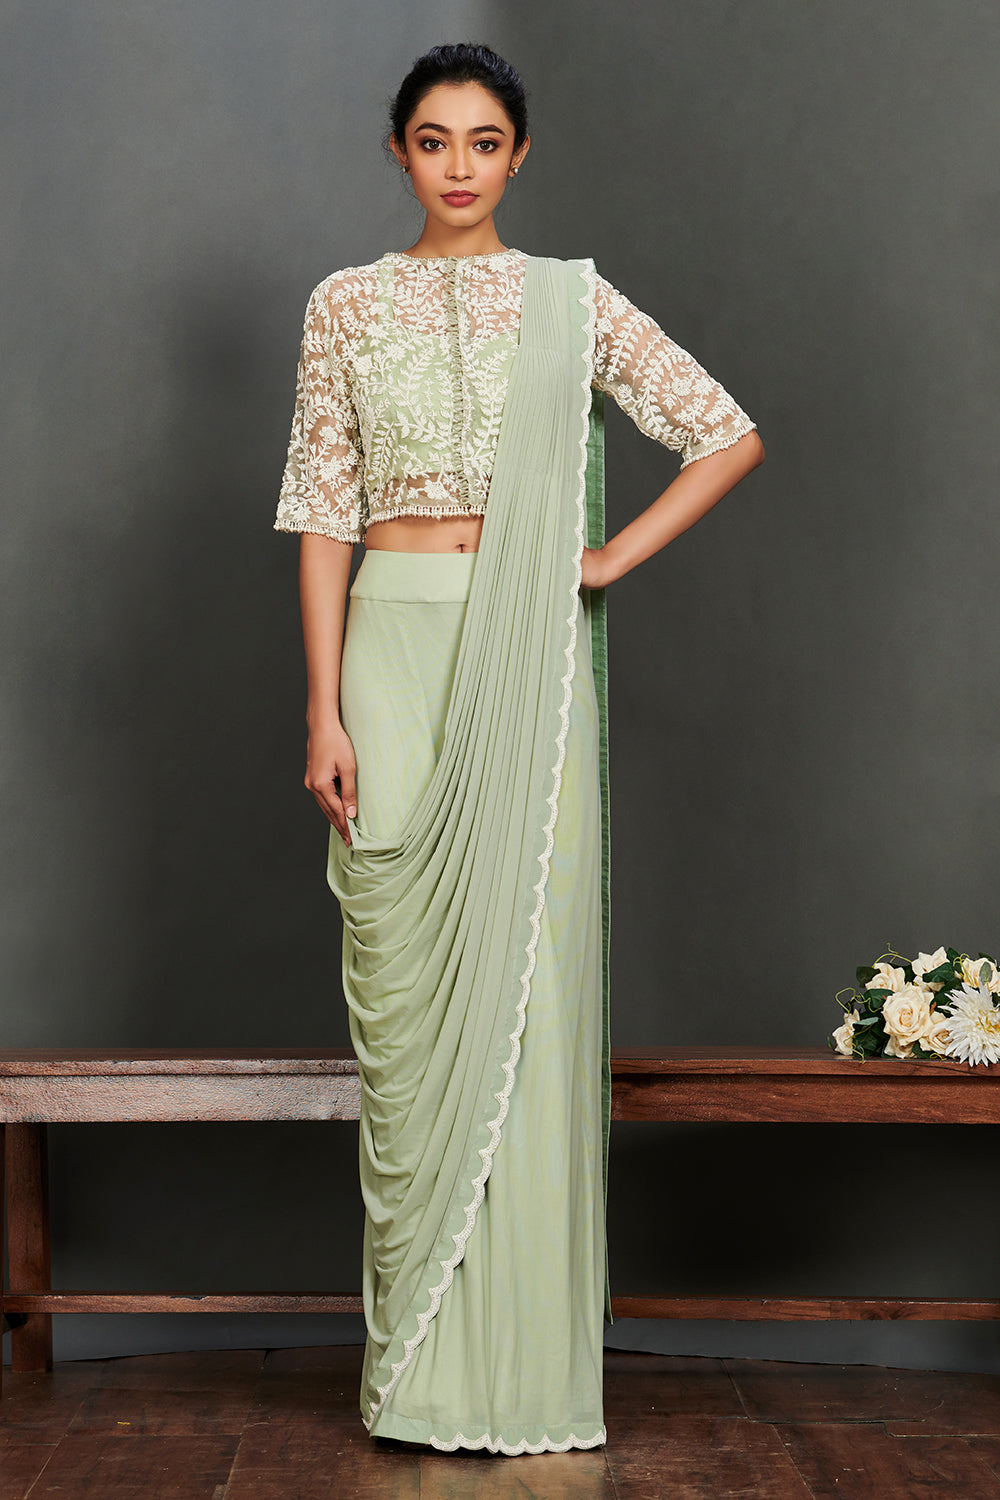 Buy beautiful mint green georgette saree online in USA with sheet jacket saree blouse. Make a fashion statement on festive occasions and weddings with palazzo suits, sharara suits, partywear dresses, salwar suits from Pure Elegance Indian fashion store in USA.-full view